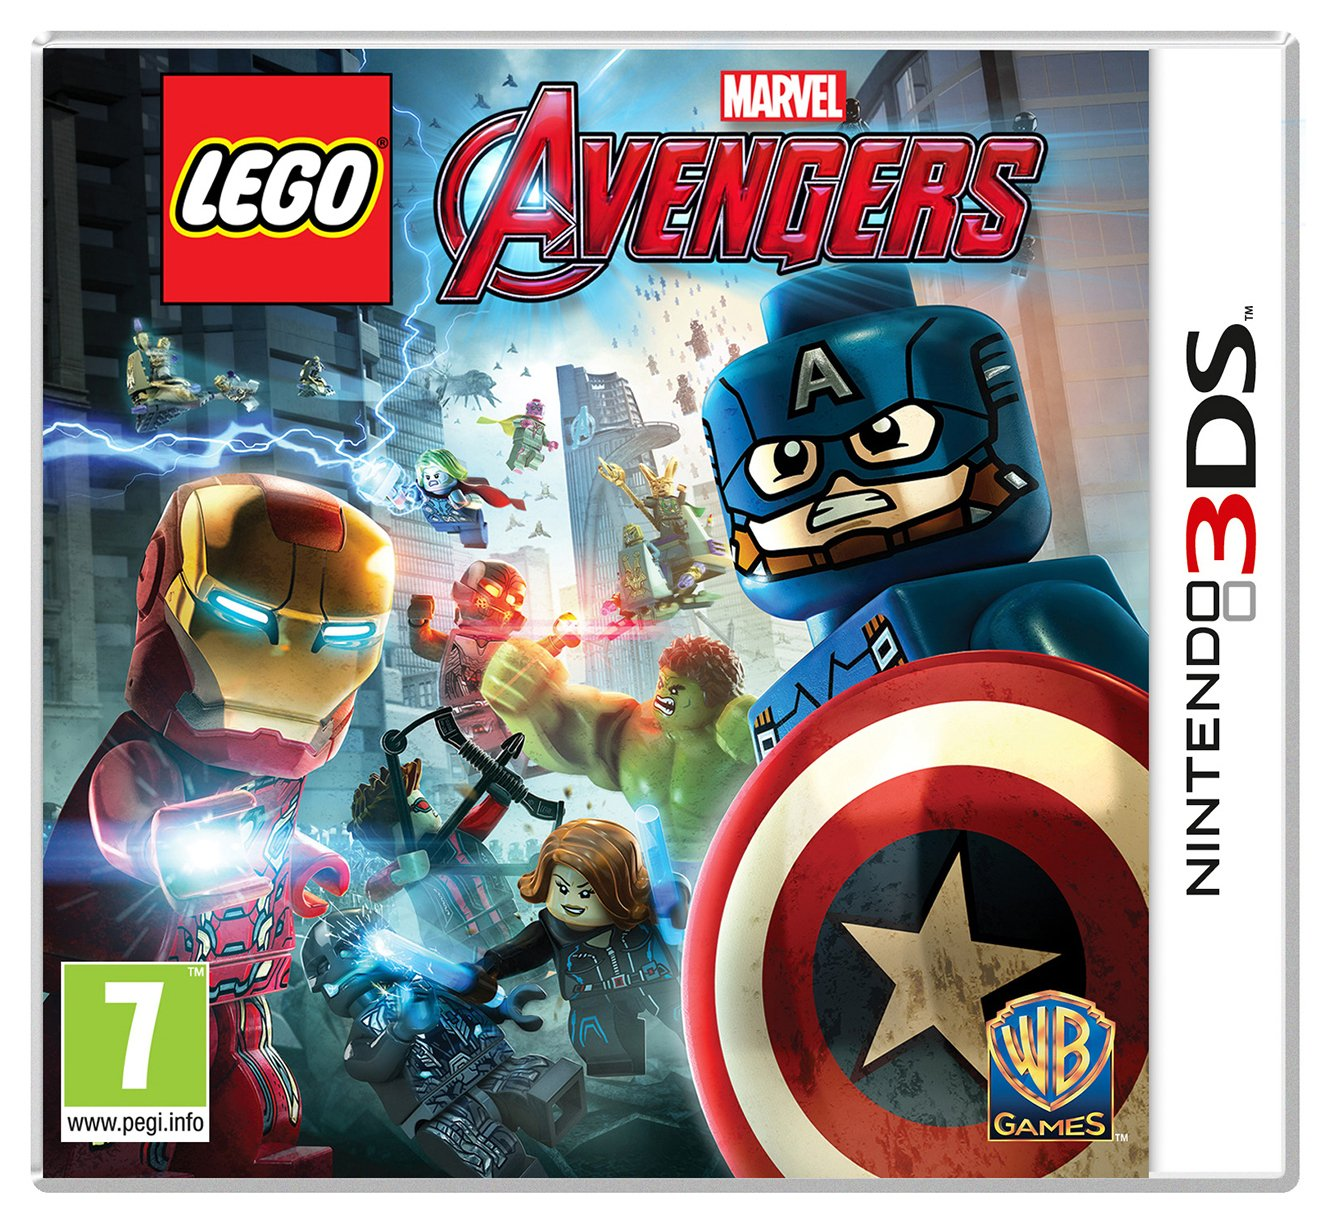 LEGO - Avengers Game - 3DS from LEGO